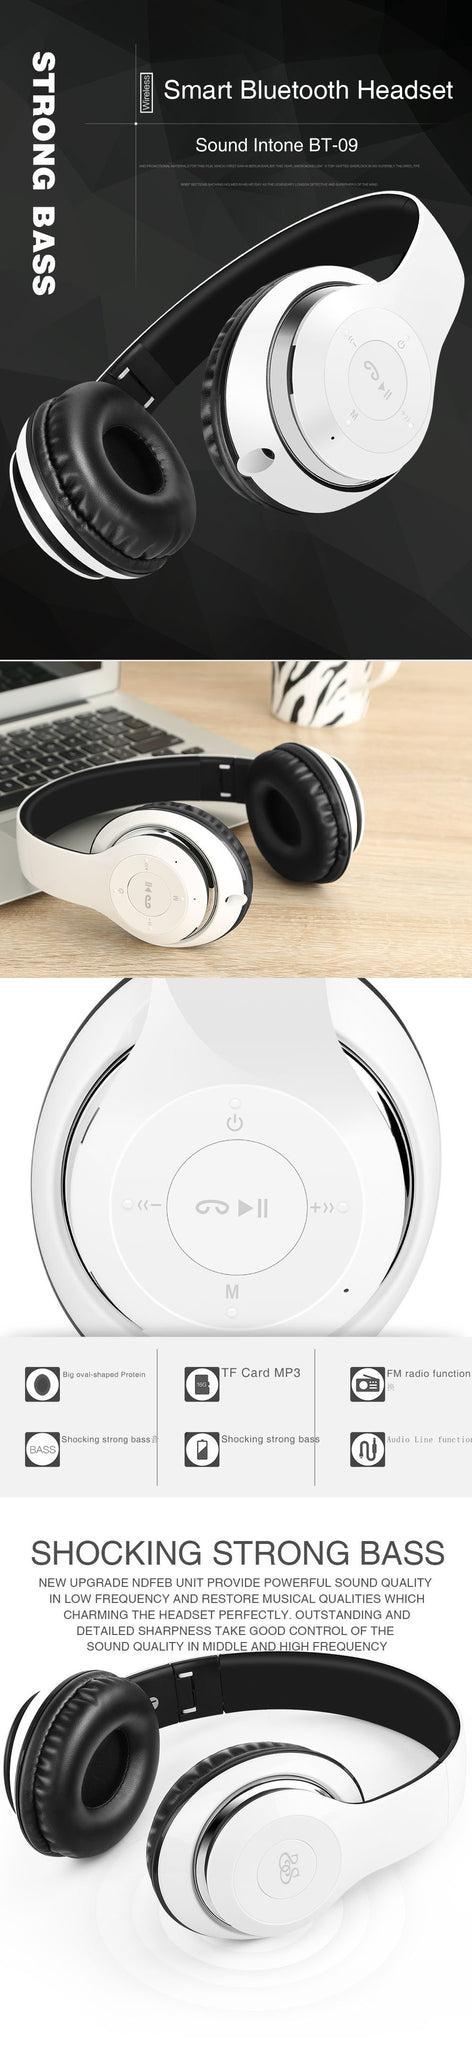 Smart Bluetooth Headphone BT-09 Sound Intone - SmartStuff.com.br